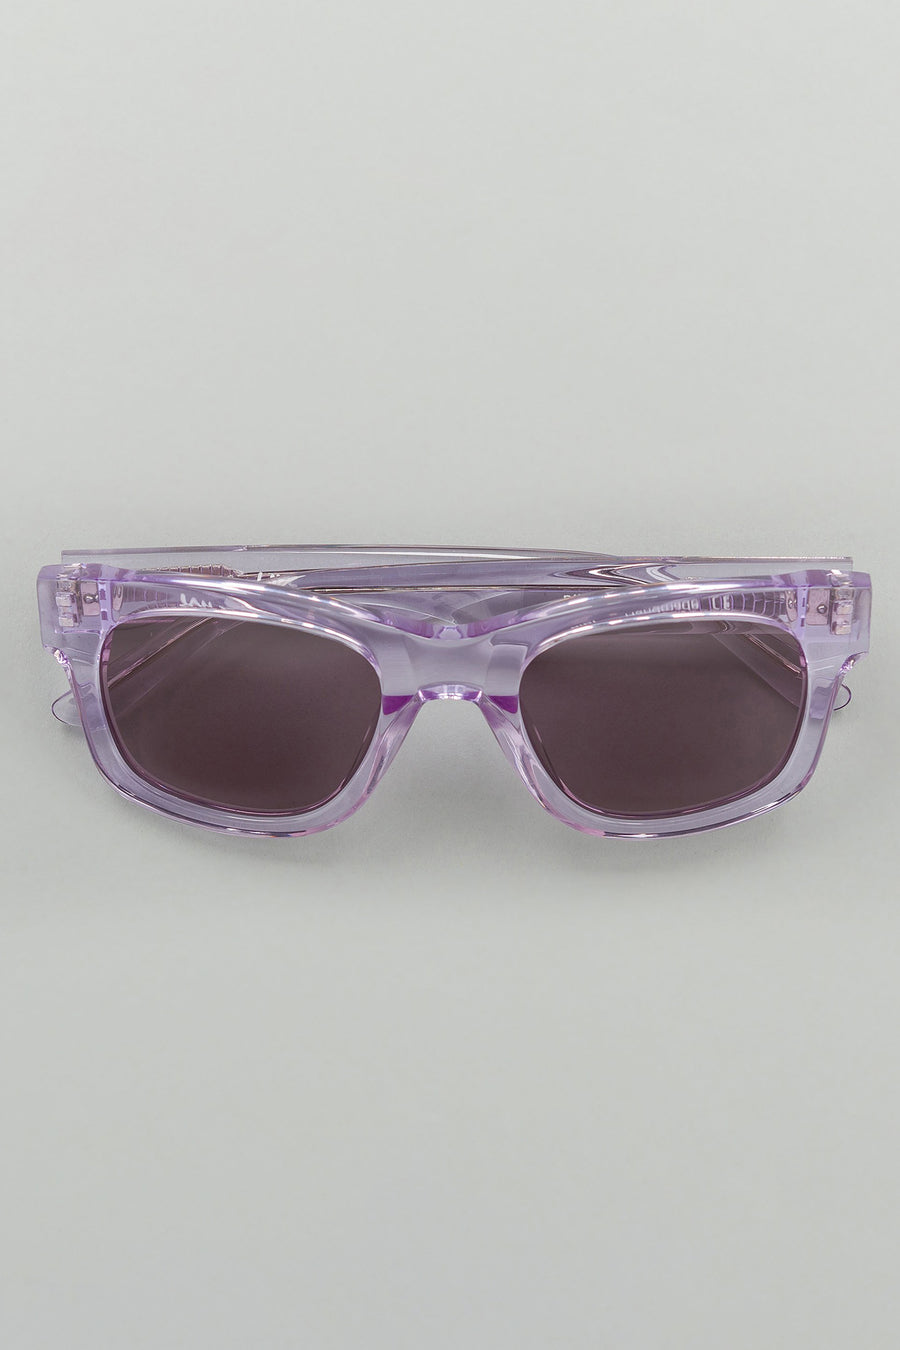 Sun Buddies Bibi Sunglass in Dirty Sprite - Notre